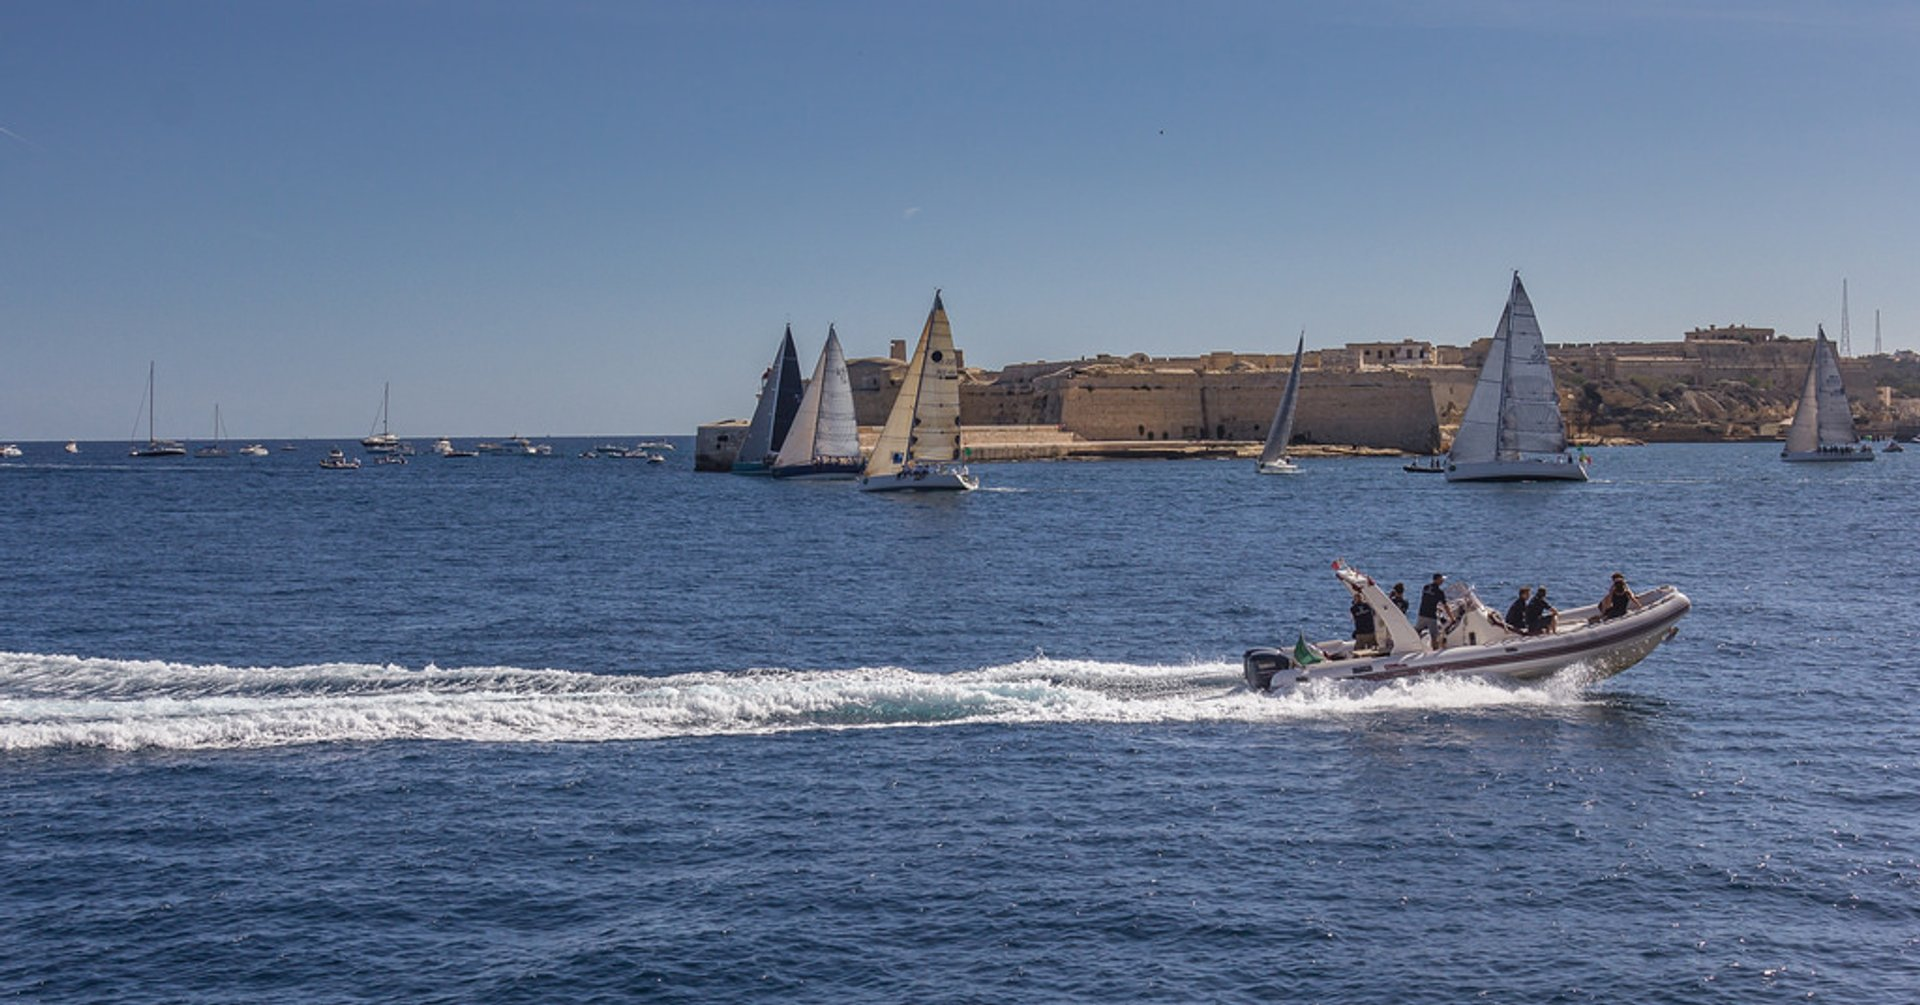 Best time for Rolex Middle Sea Race in Malta 2020